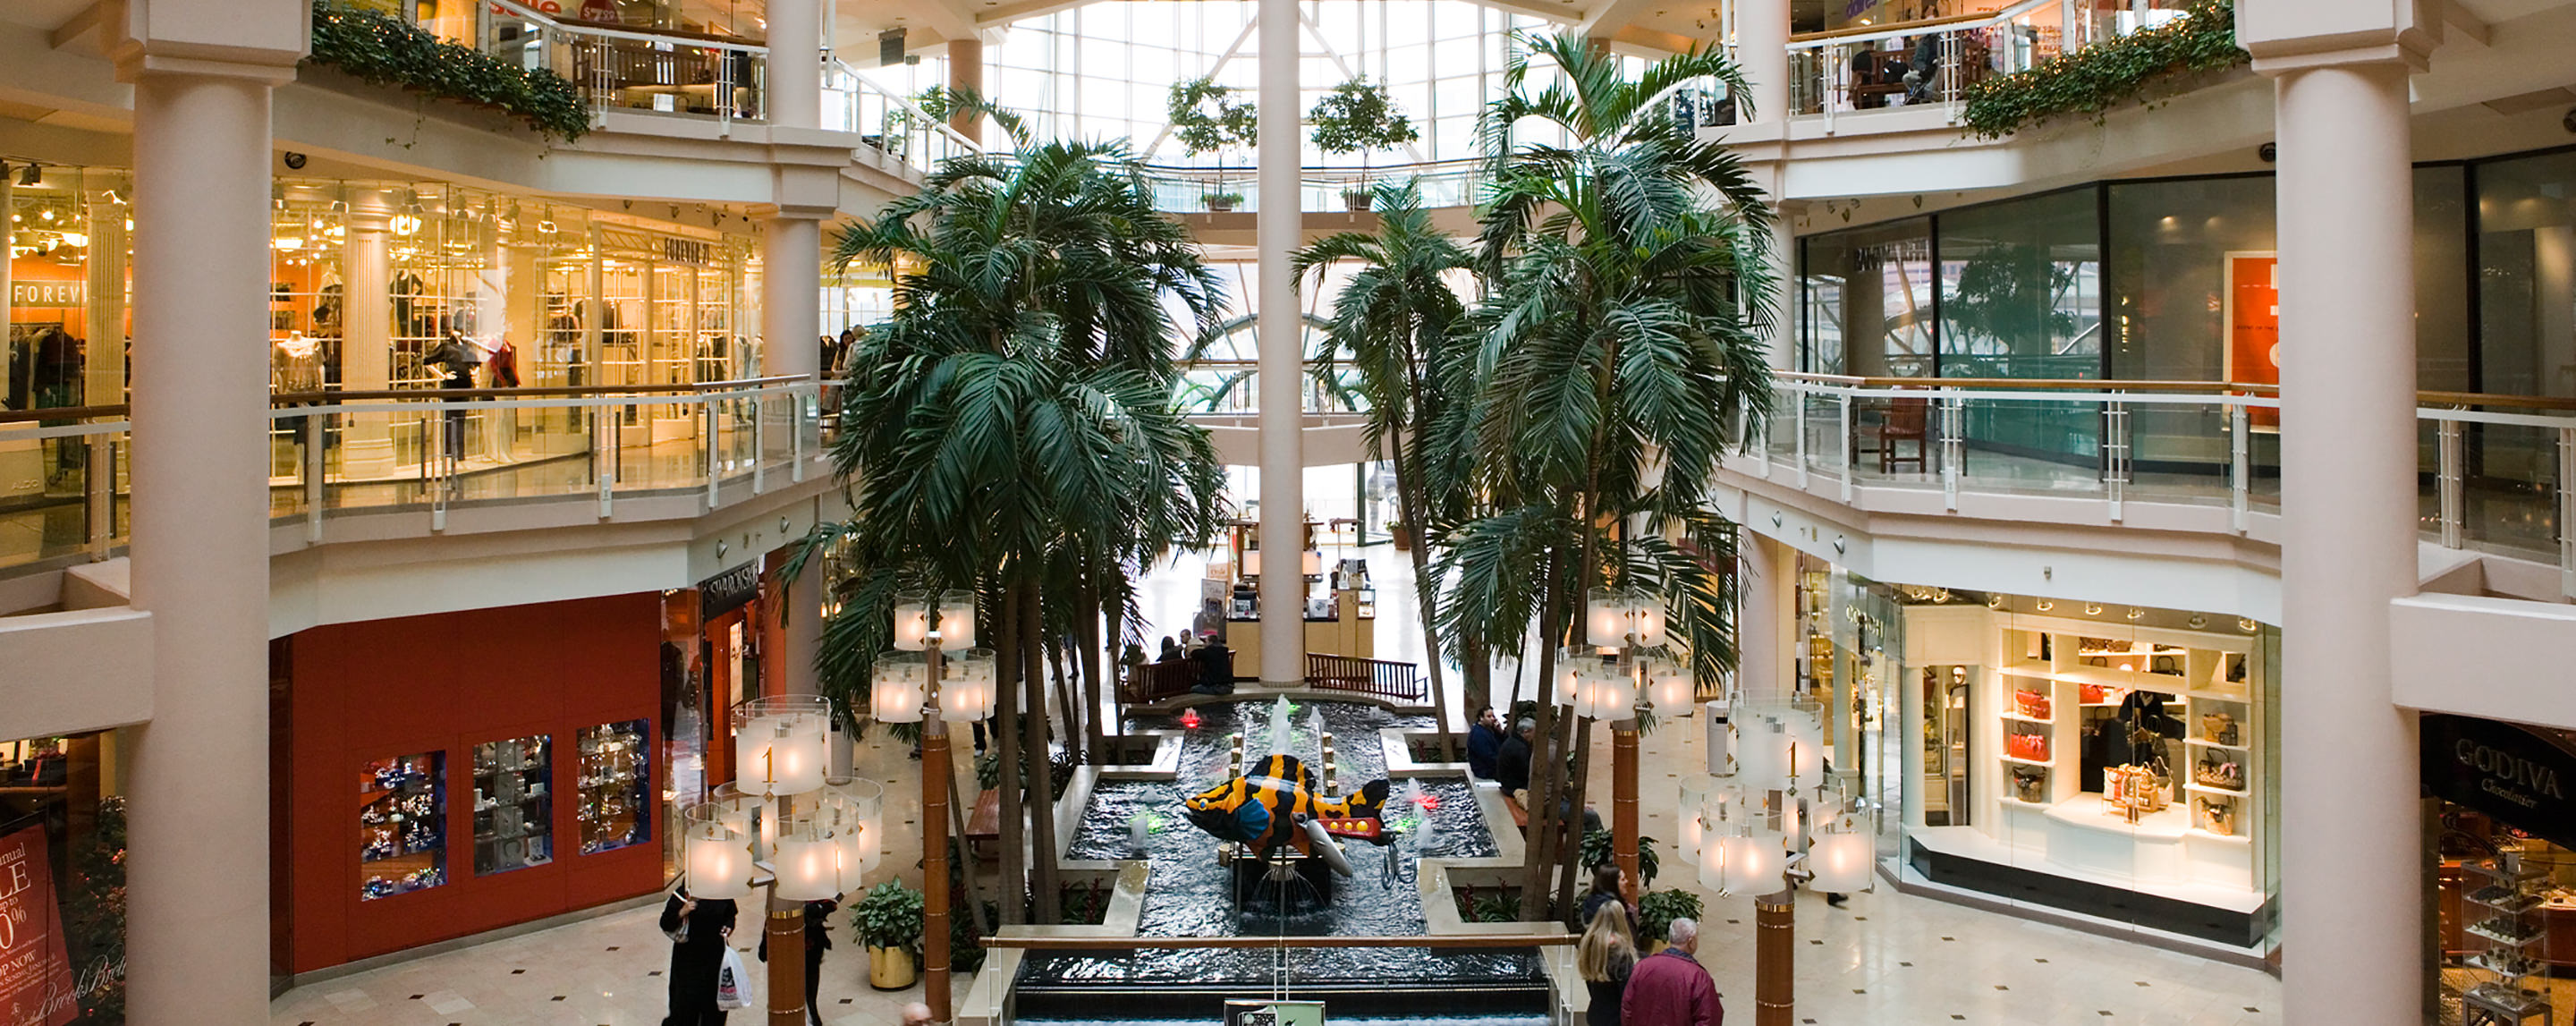 Decorative landscaping adorns a common area between several levels of retailers at The Gallery at Harborplace.